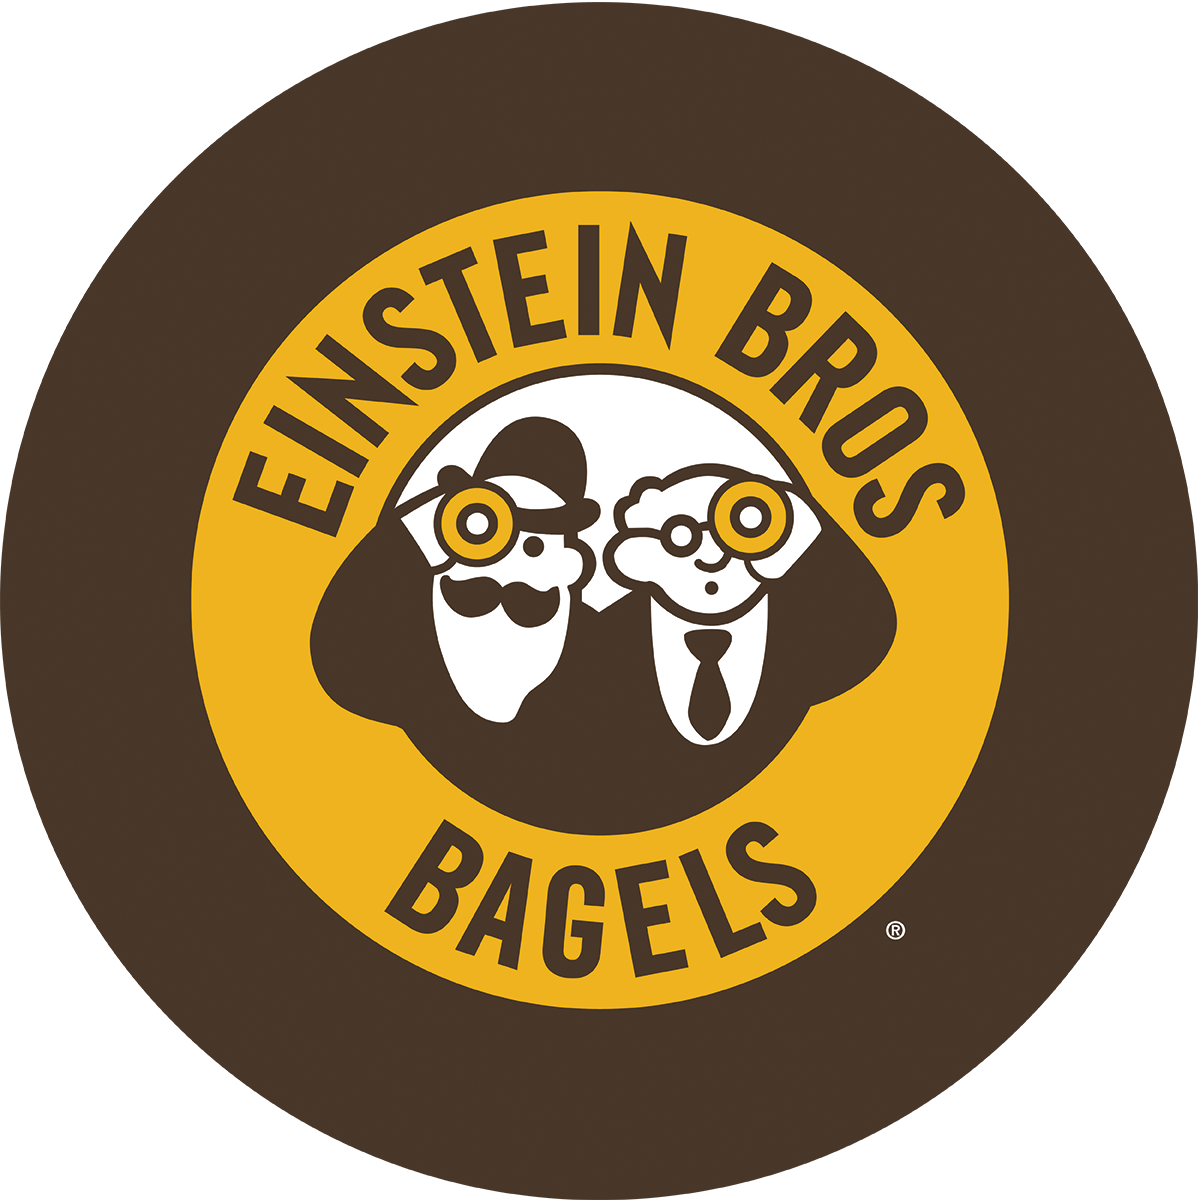 Einstein Bros. Bagels - Ann Arbor, MI - Restaurants